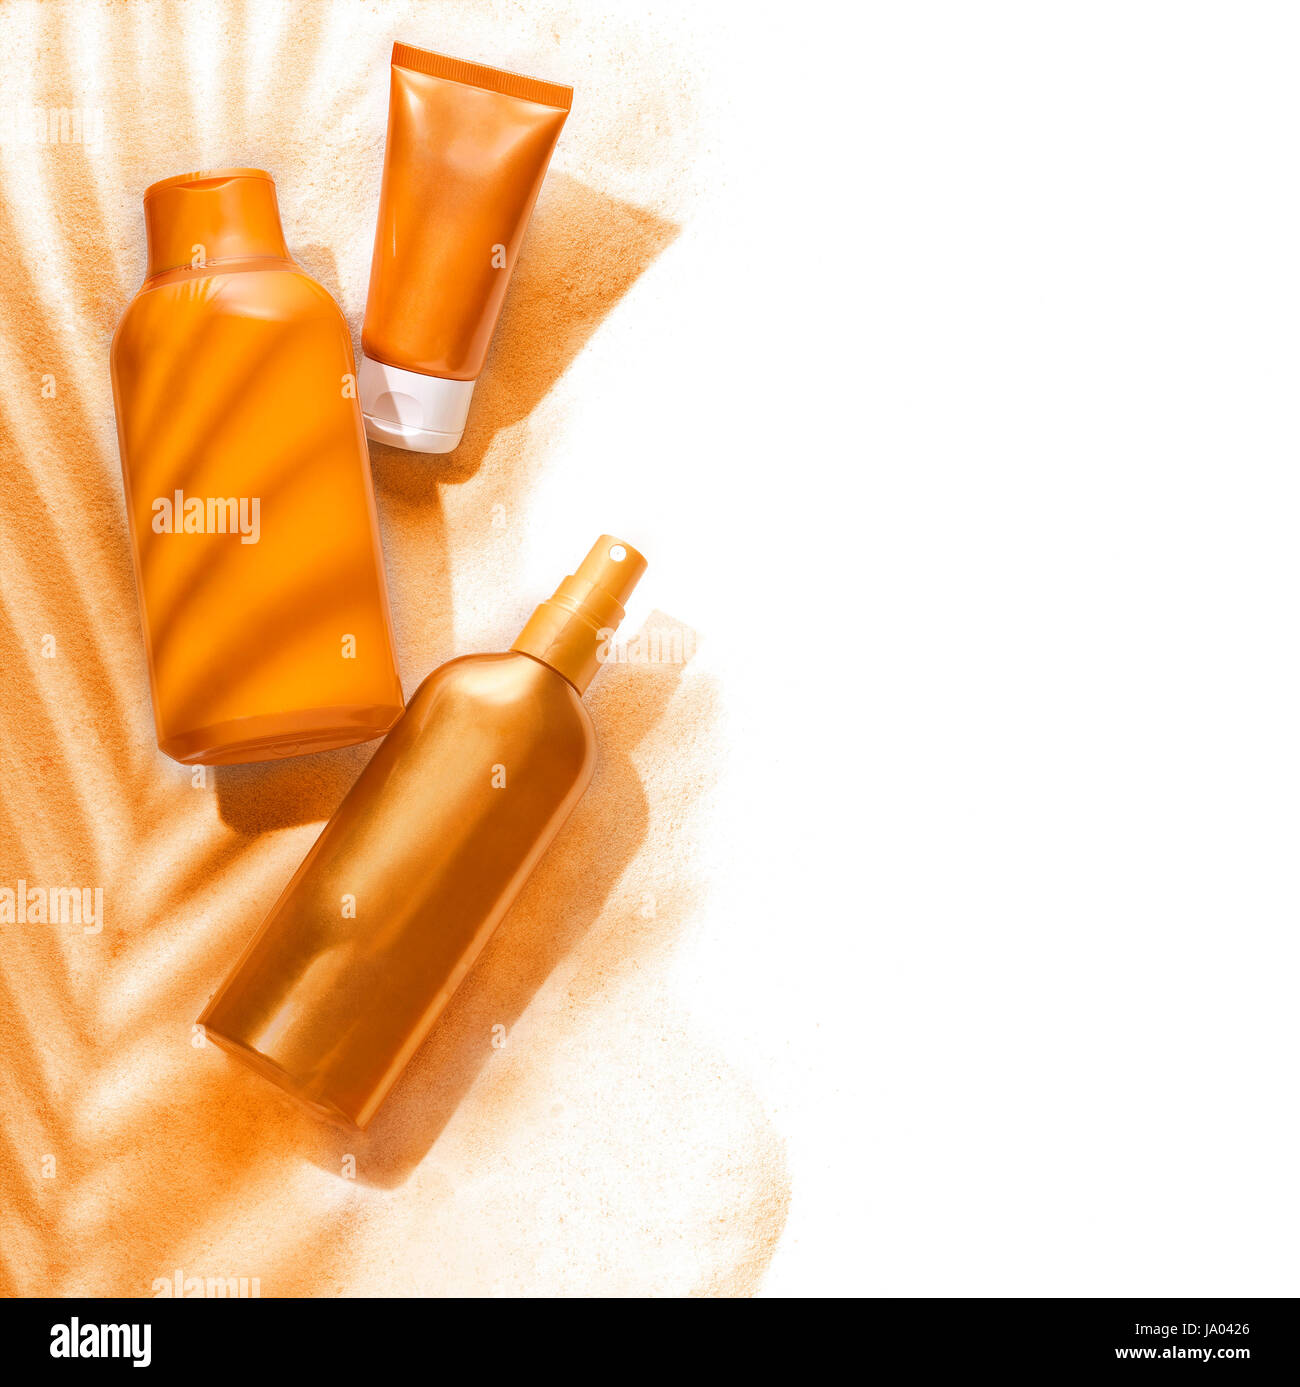 Cosmetics Beauty Care Tan Backdrop Background Skincare Stock Photo Alamy